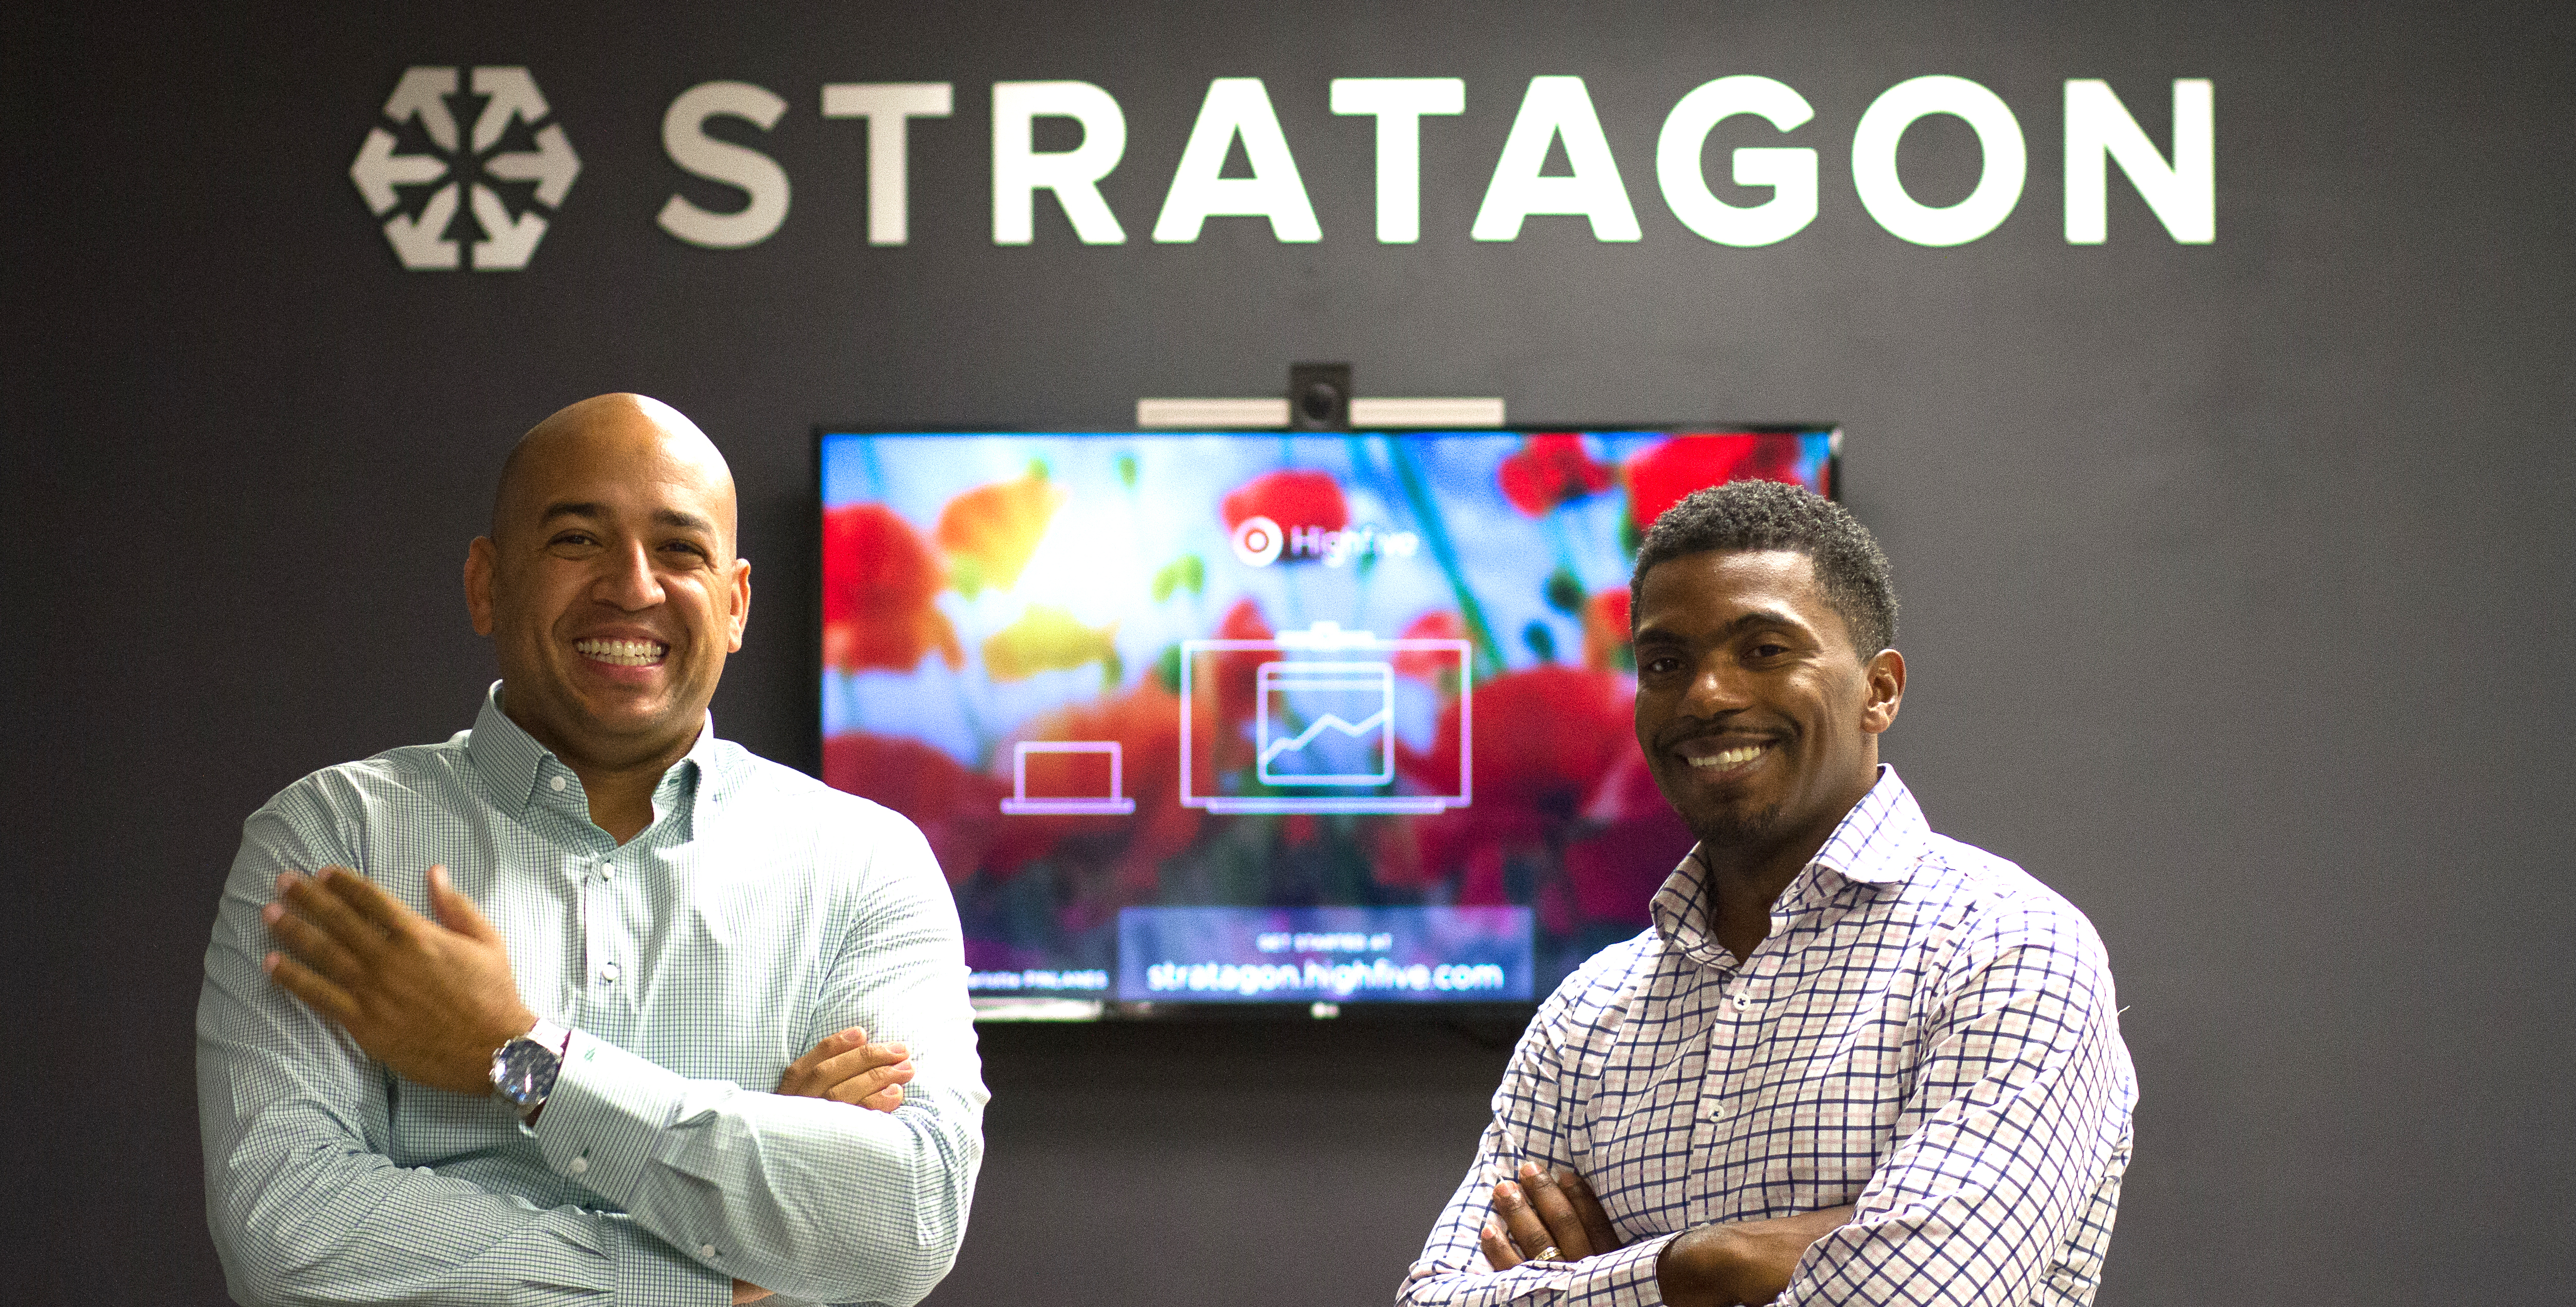 Interviewees Ryan Burkett and Alex Moore stand smiling in front of a wall in their office emblazoned with the company name: Stratagon